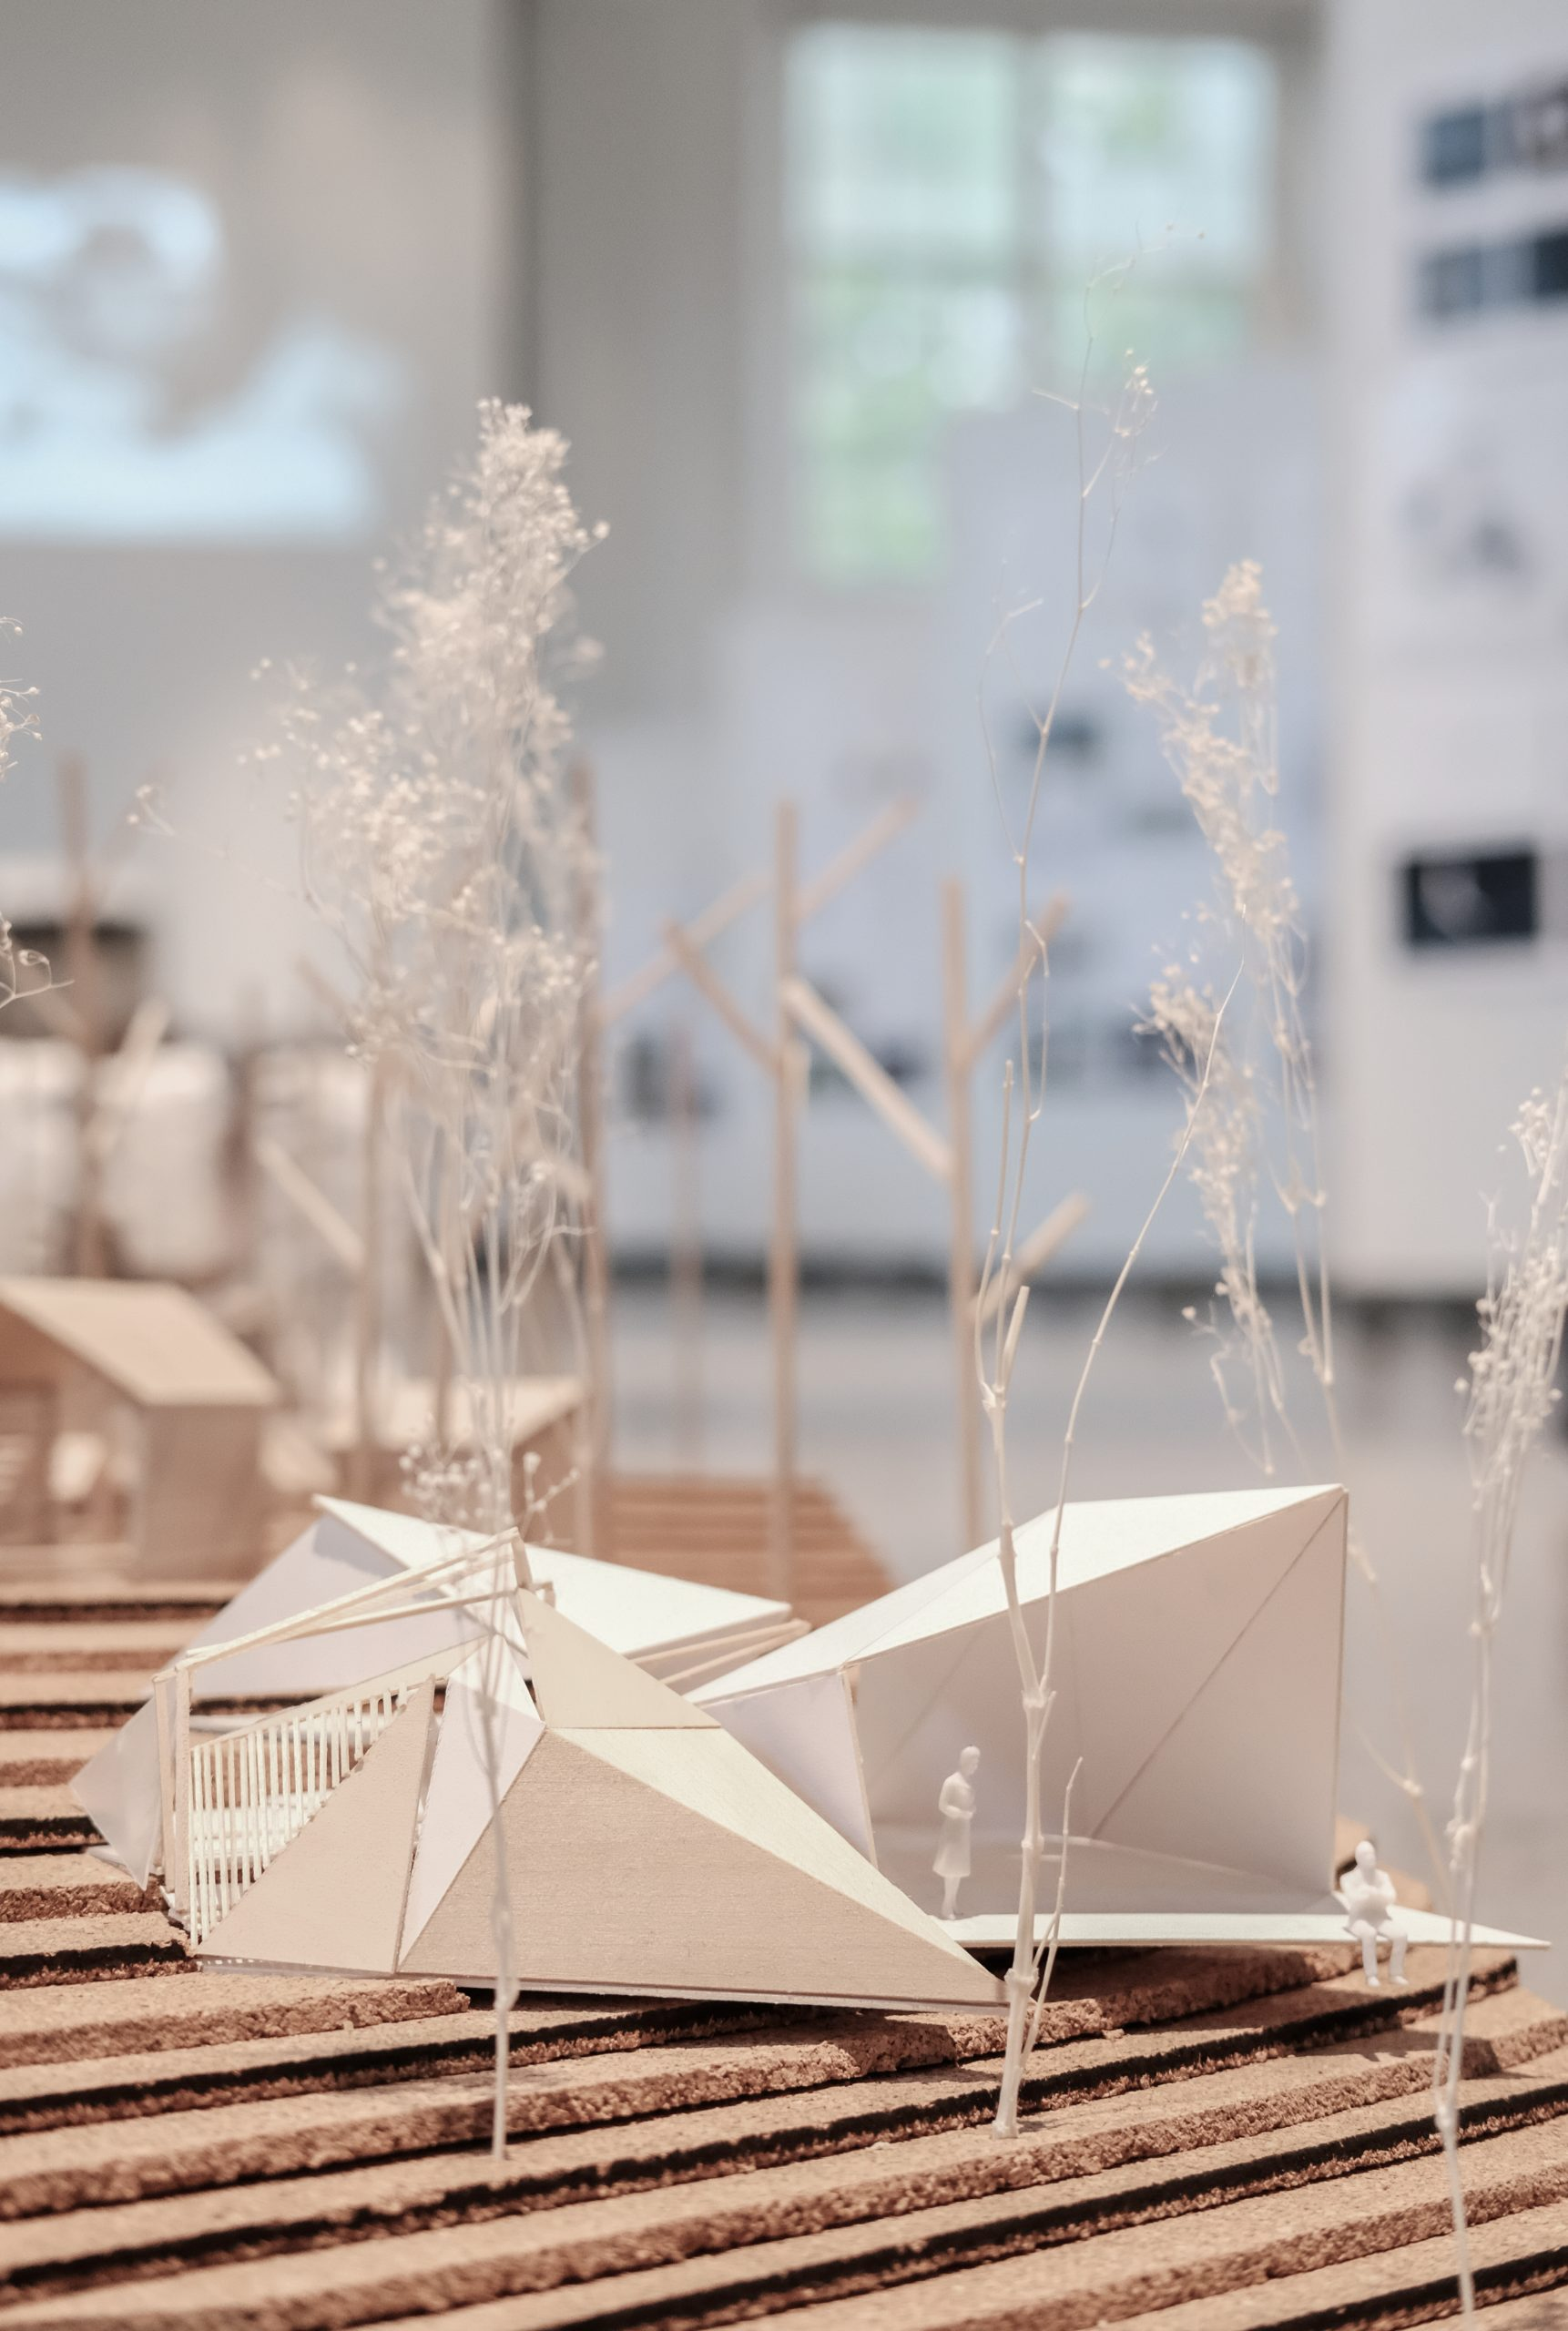 closeup view of final model in Temple Buell Architecture Gallery